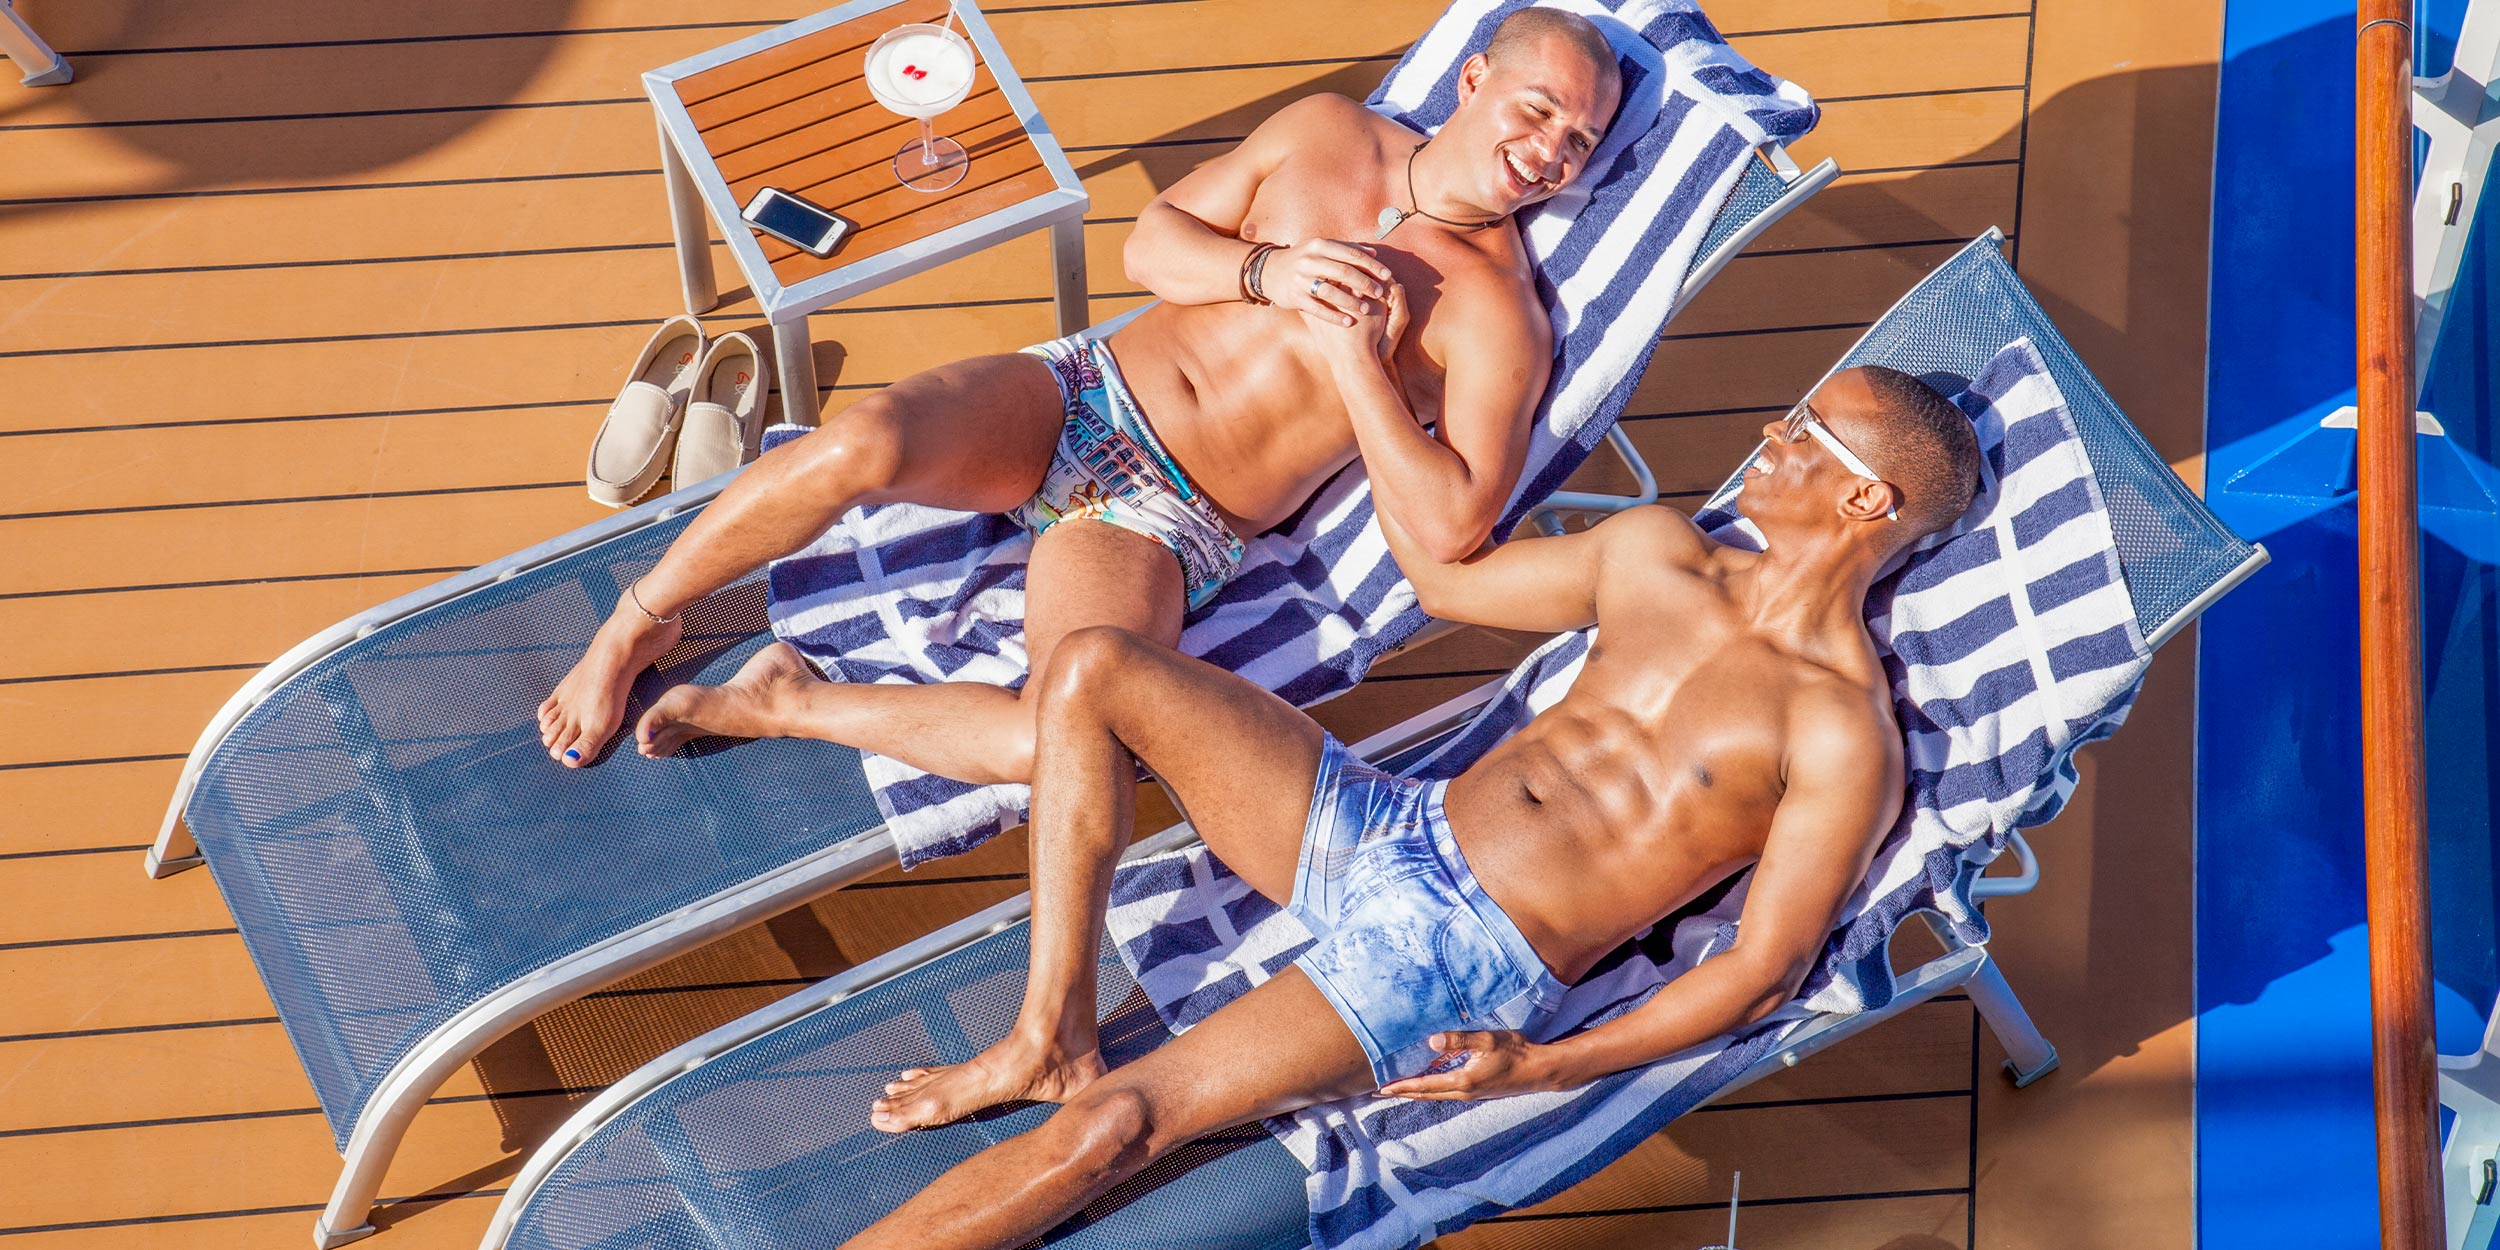 Two men laying down shirtless on lawn chairs on a sunny pool deck smiling and laughing at each other